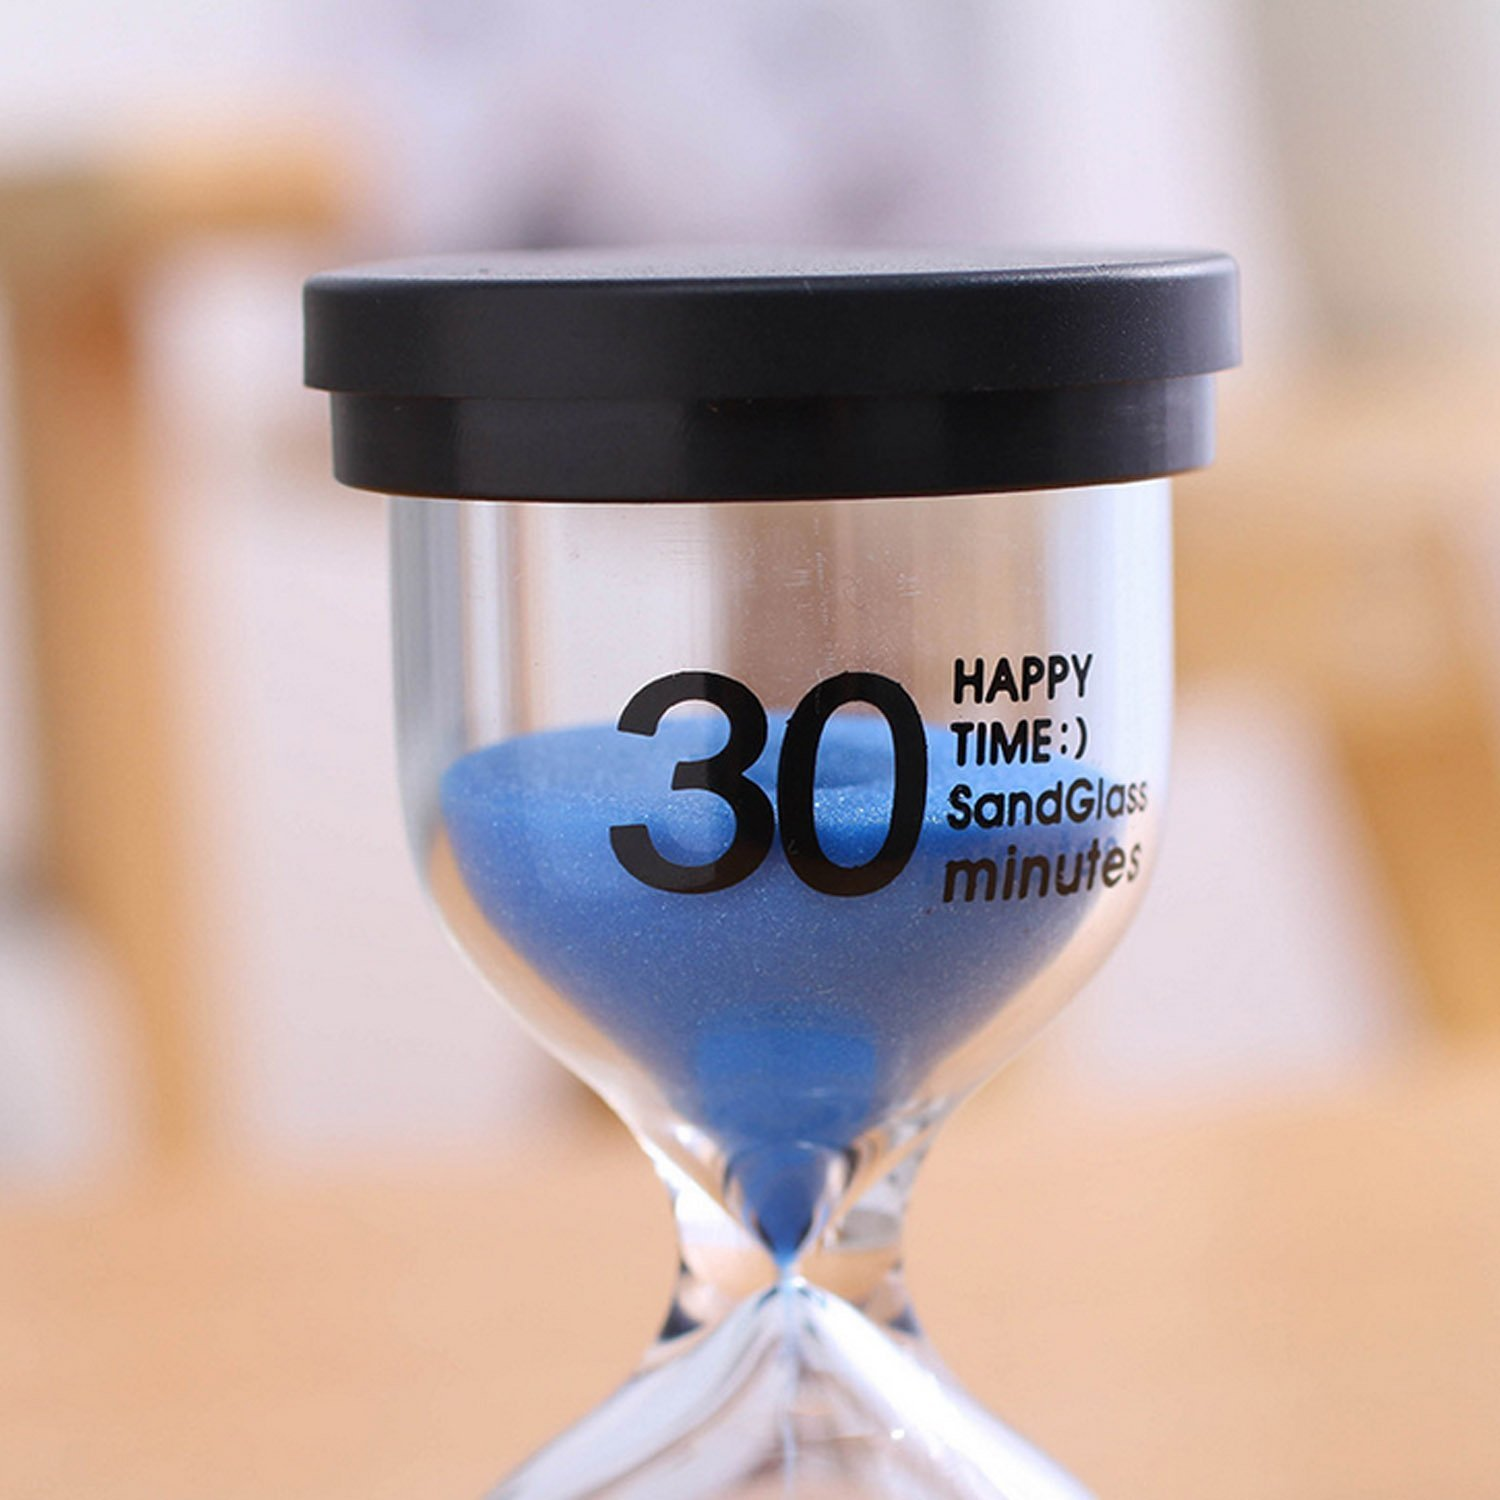 Gosear Hourglasses, Sand Timer 6pcs Hourglass Sand Clock Timer Sandglass 1 3 5 10 15 30mins for Classroom Game Home Office Decoration Random Colors. by Gosear (Image #8)